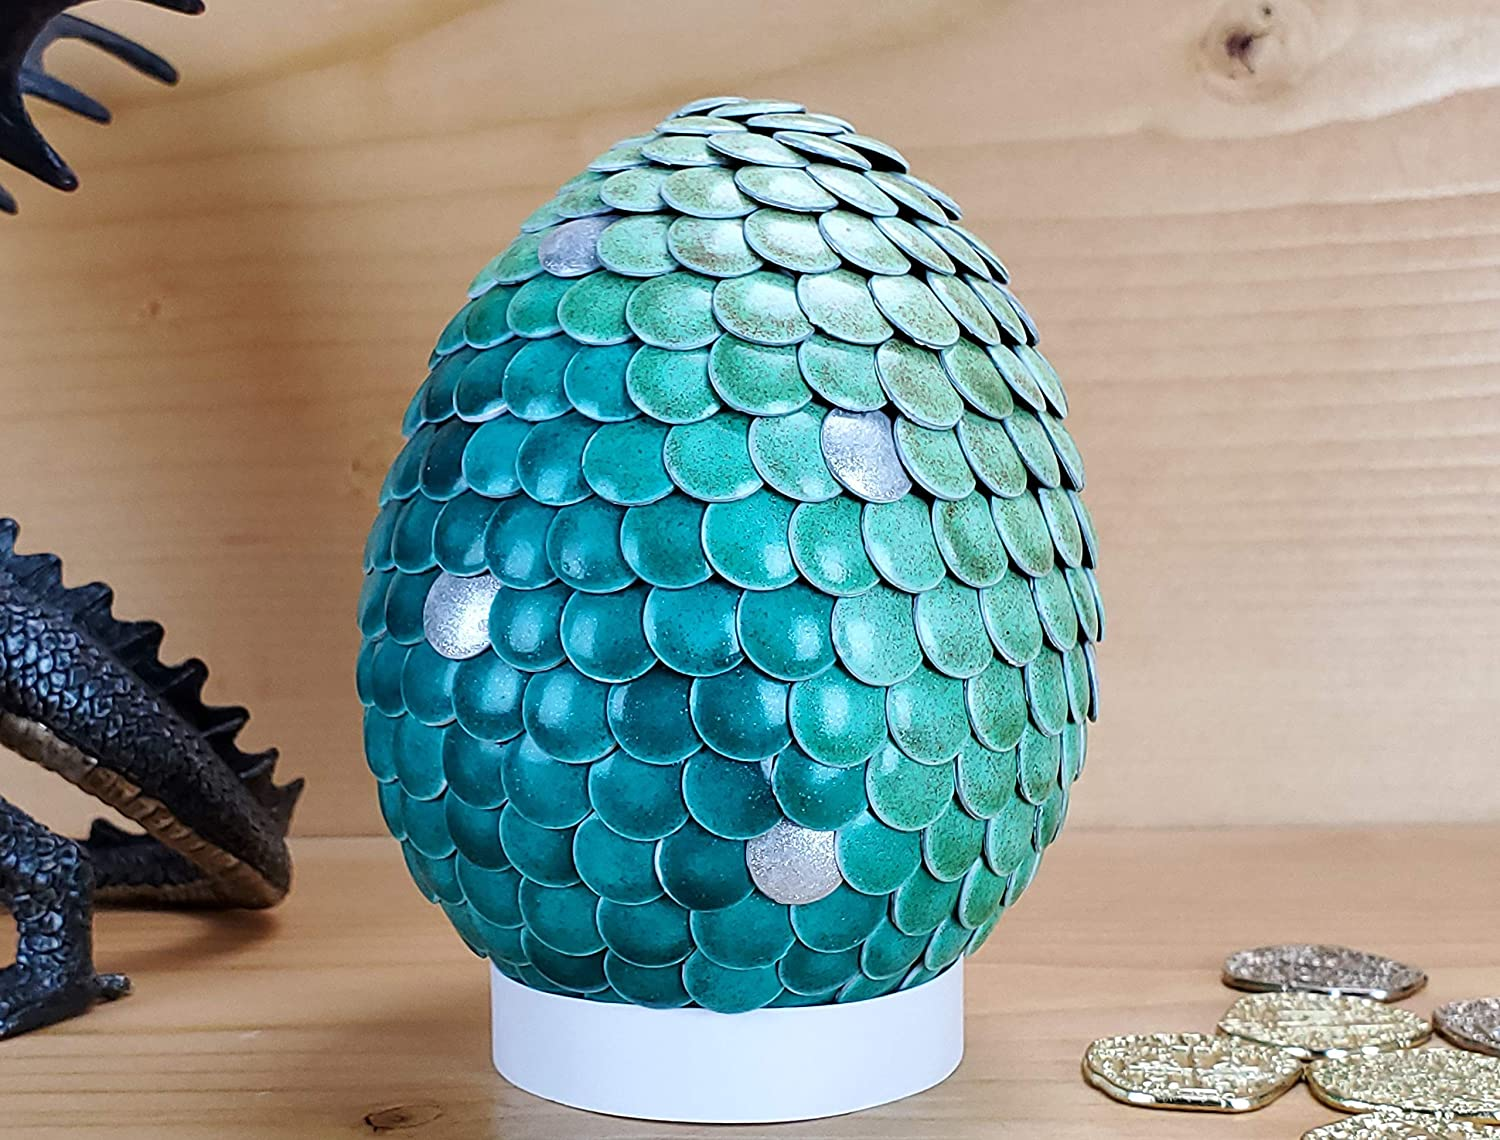 Color Changing Dragon Egg 4 inch Green and Silver to Light Green Handmade Heat Activated